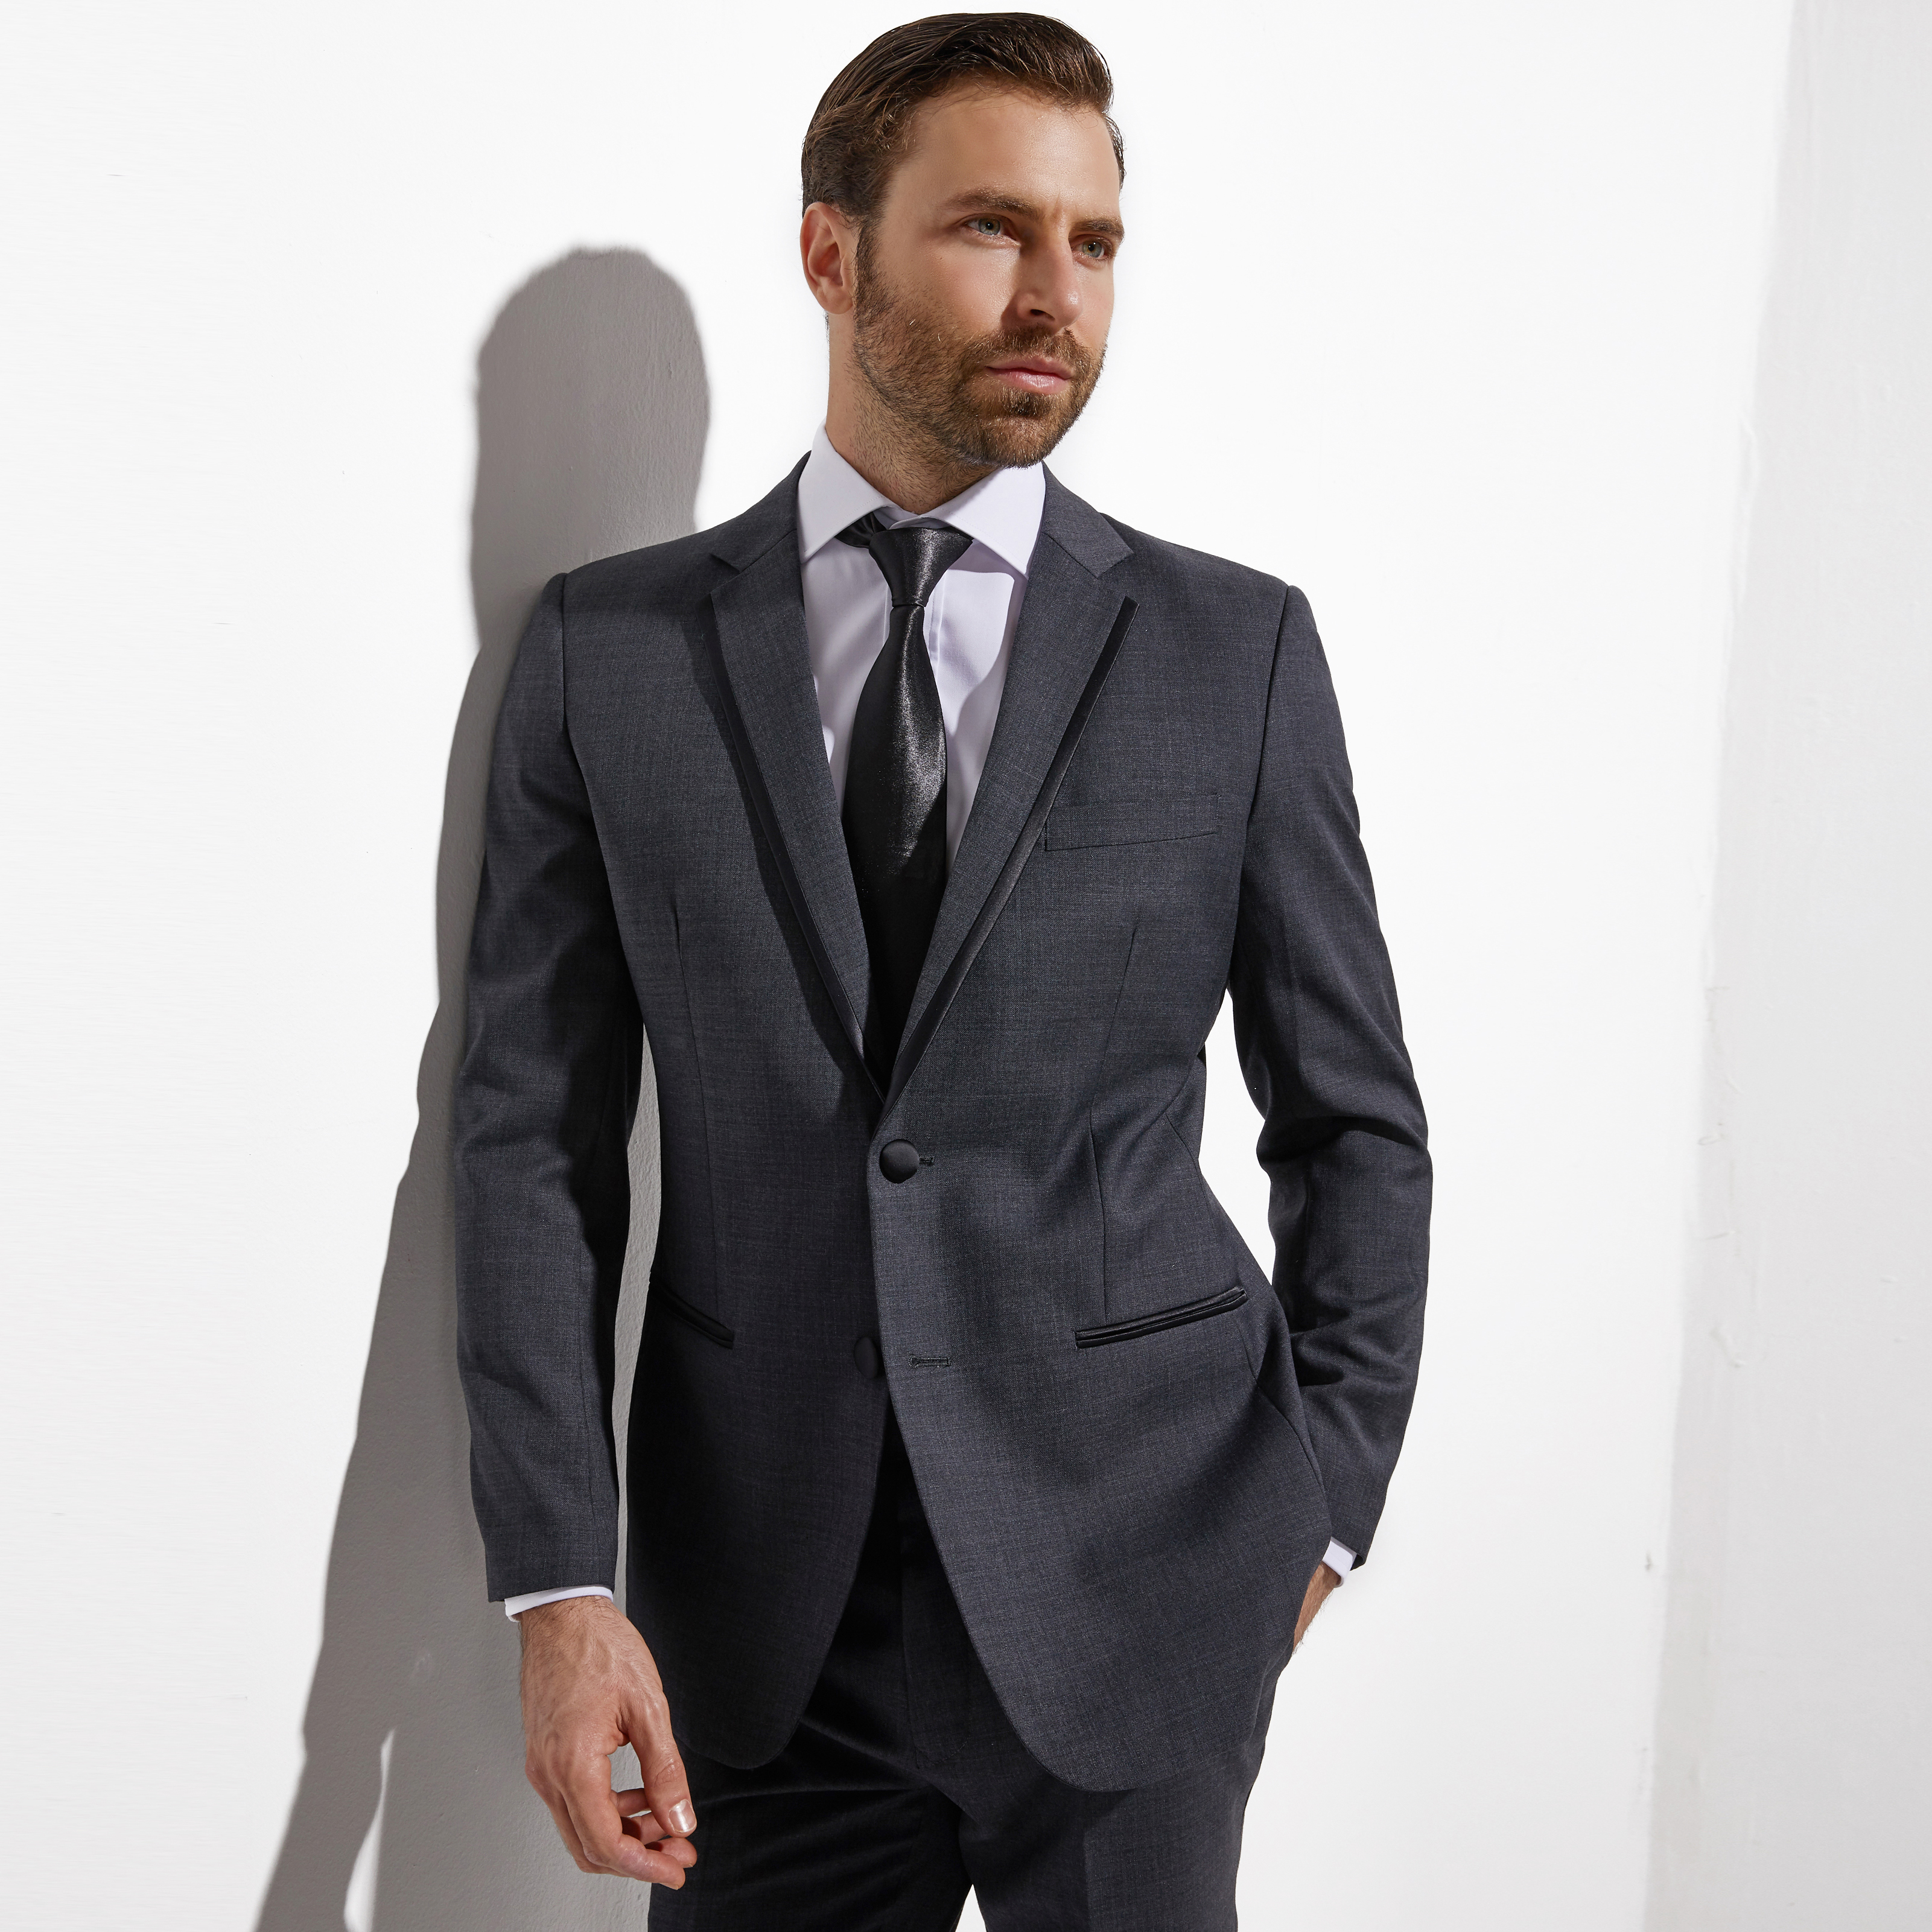 2020 Middle Grey Wedding Tuxedo For Men Custom Made Slim Fit Gray Groom Tuxedo Evening Tailored Latest Wedding Suits For Men